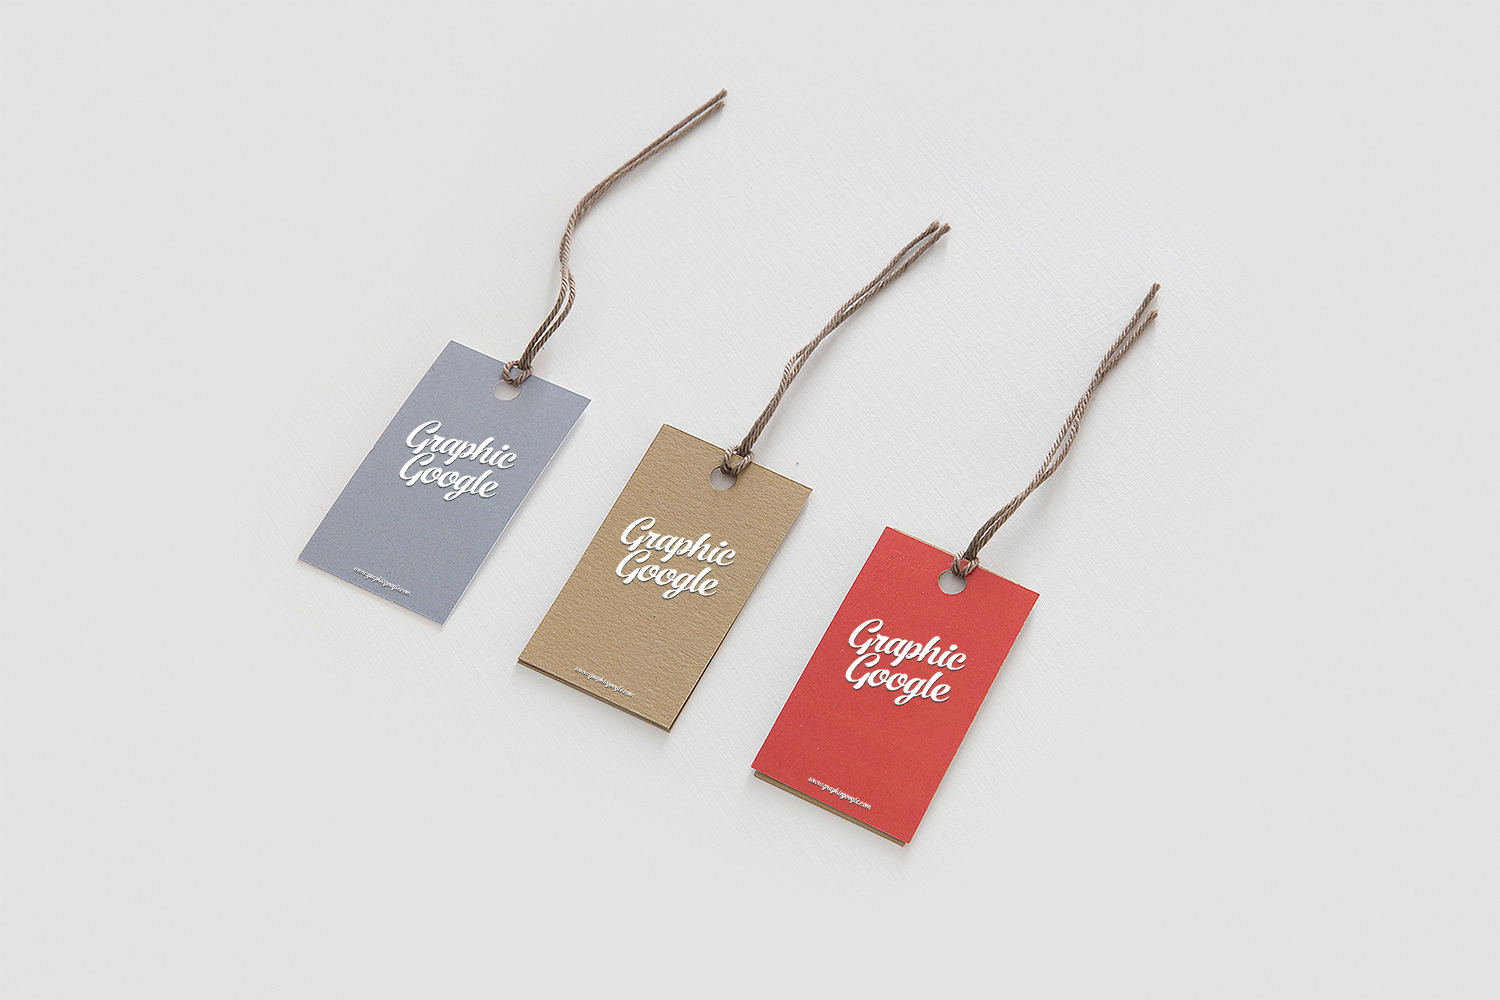 free-label-hang-tag-logo-mock-up-psd-2